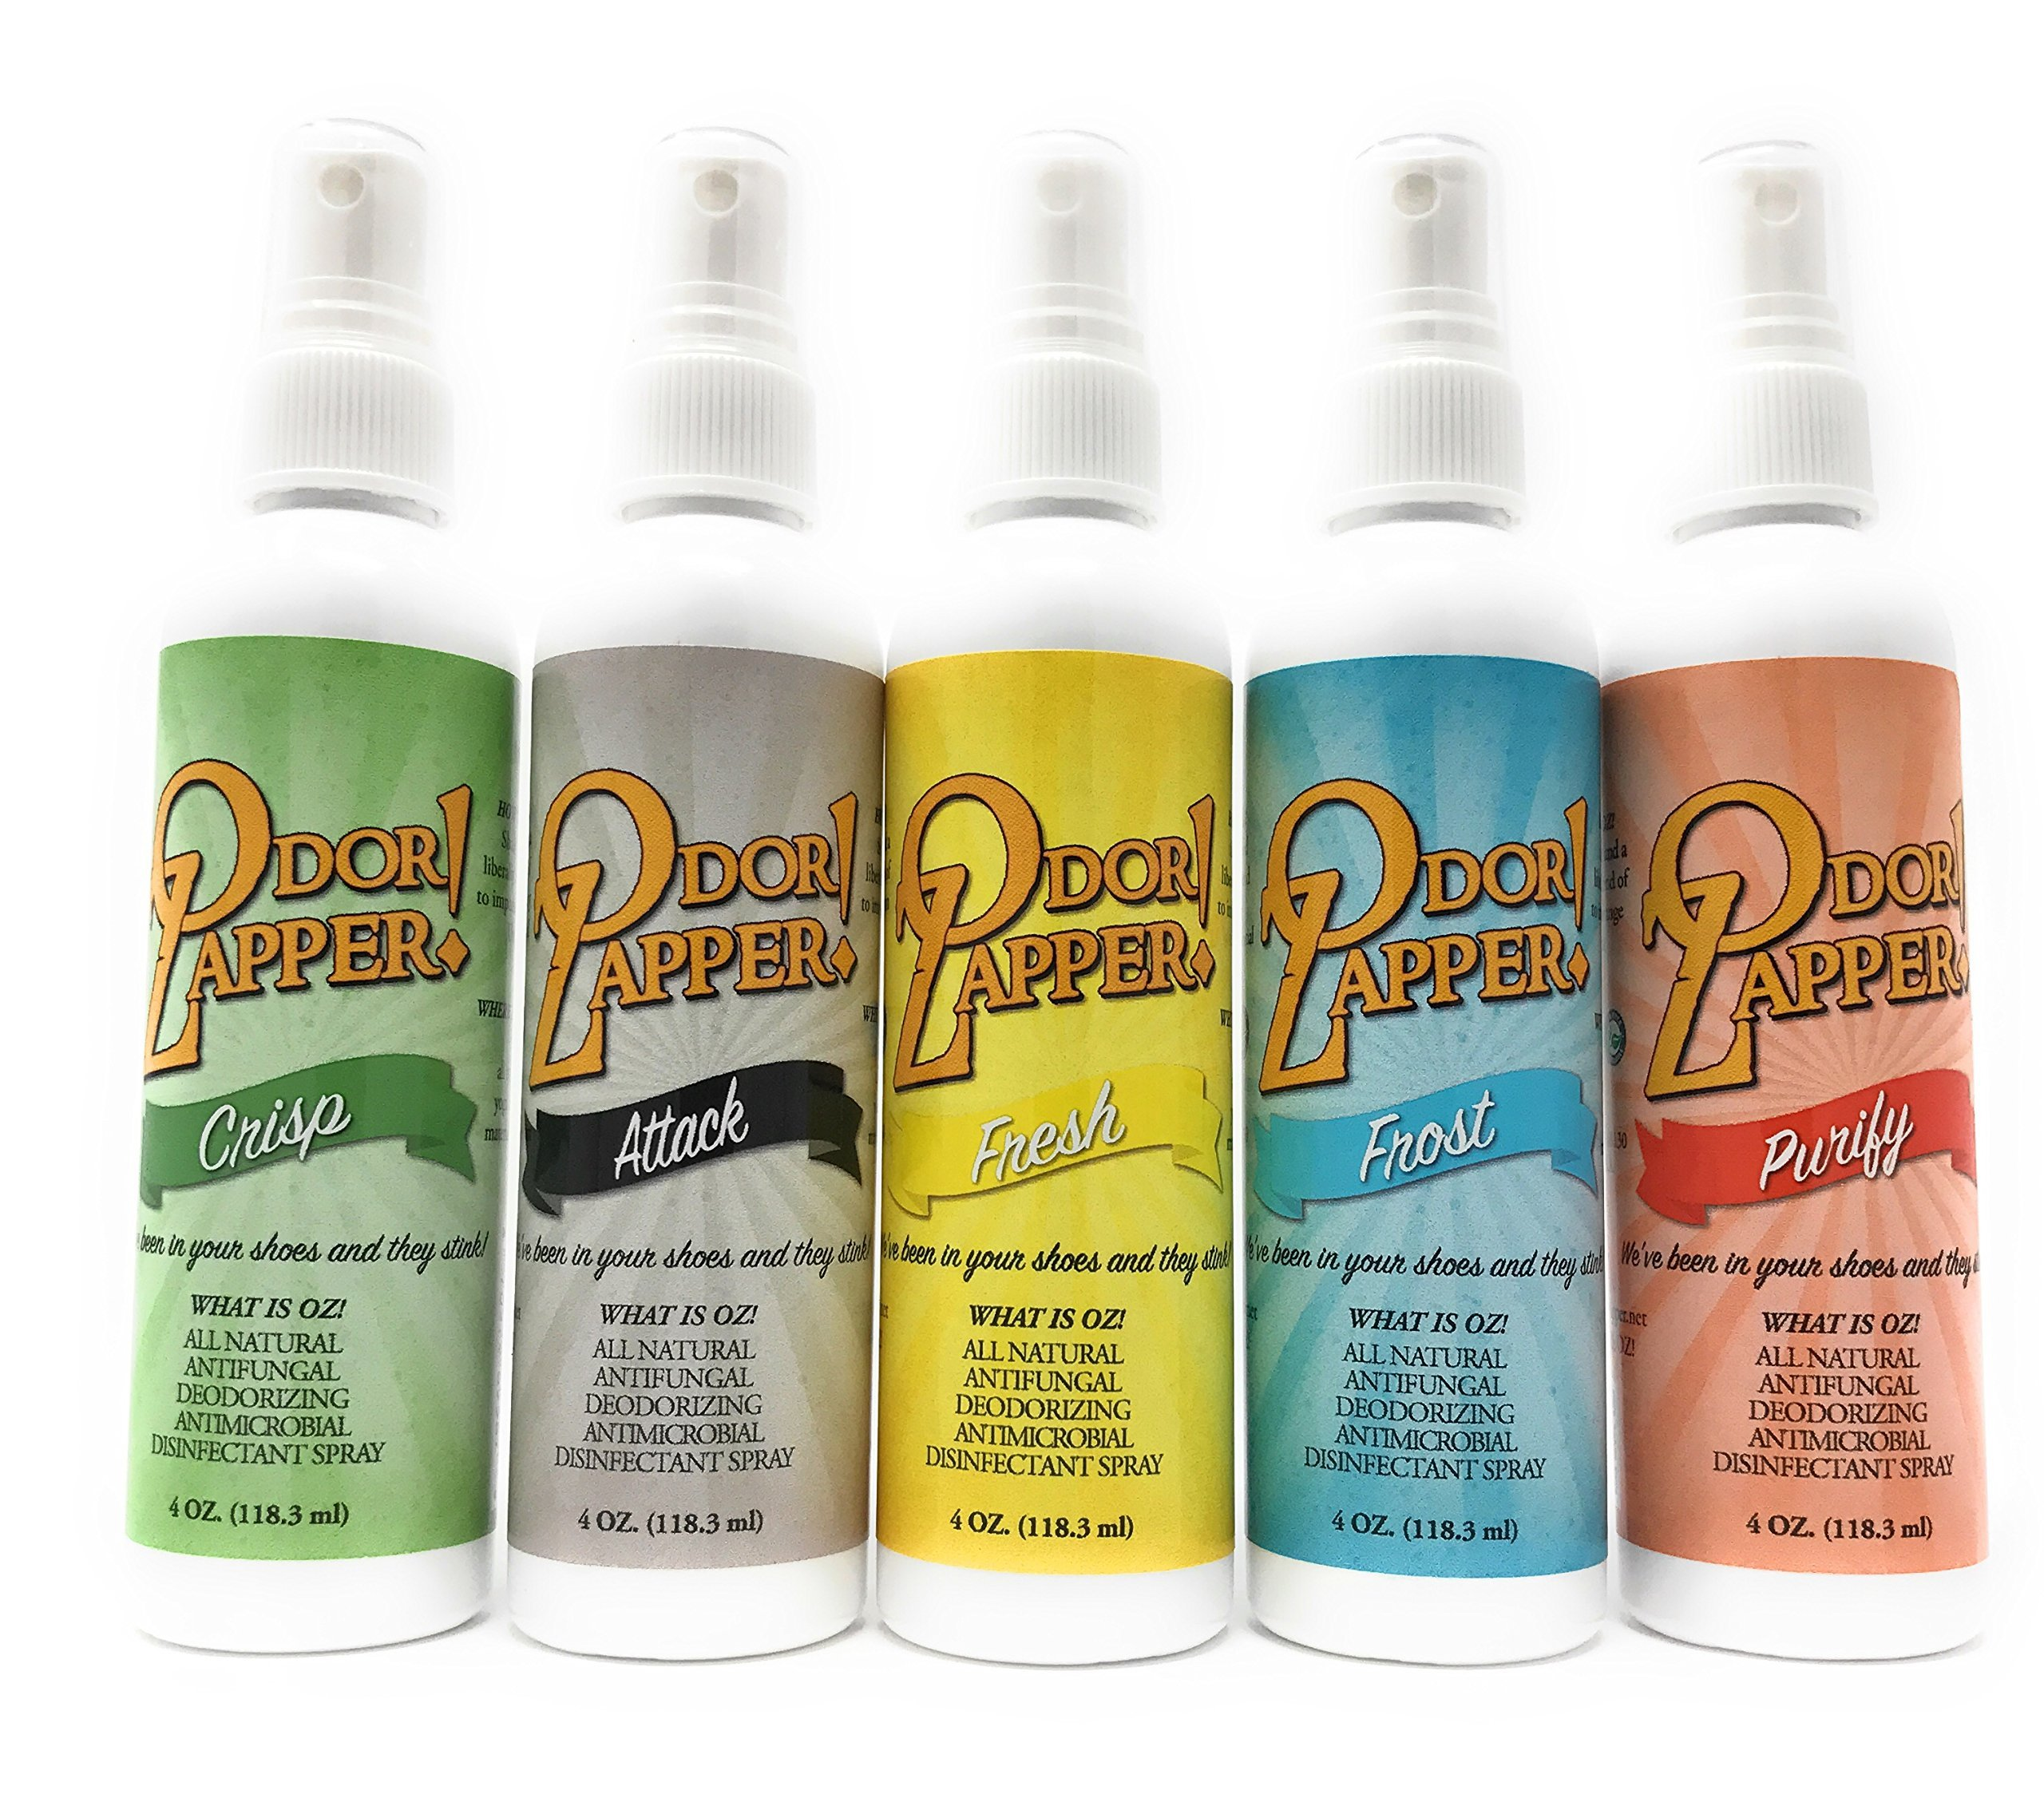 Odor Zapper Disinfectant Spray - For use in Shoes, Gym Bags, Yoga Mats, Kid's Cars and More! ''Variety Pack'' 5 Pack, 4oz bottles